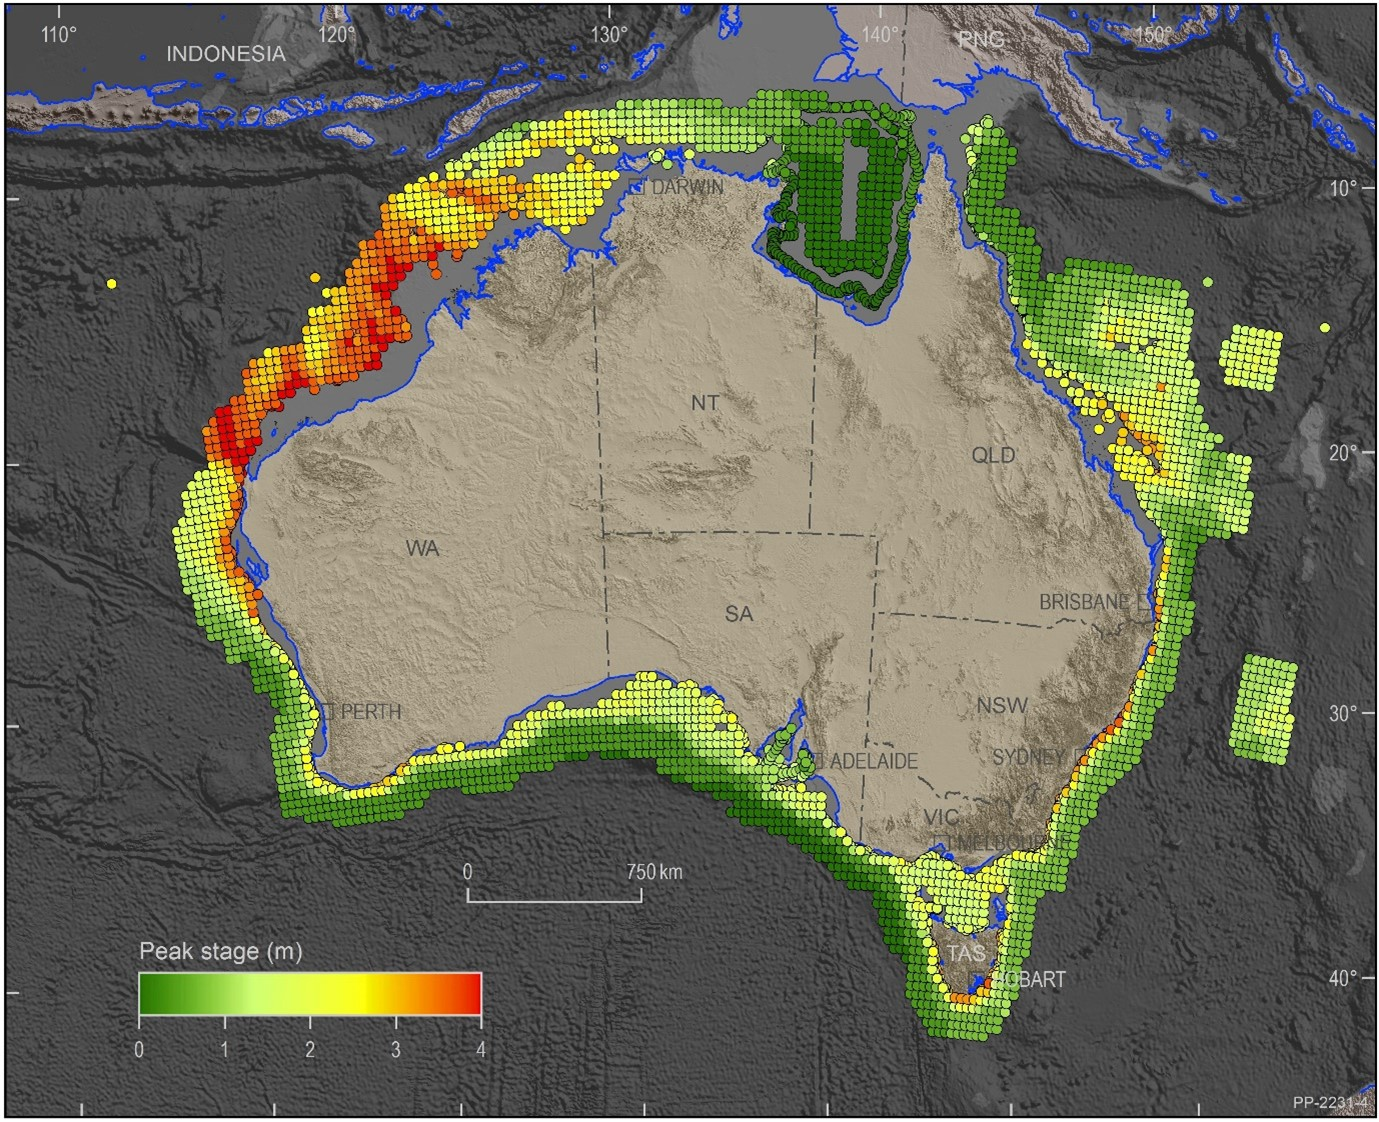 Map of Australia showing modelled one-in-1000-year tsunami wave height in the waters offshore.